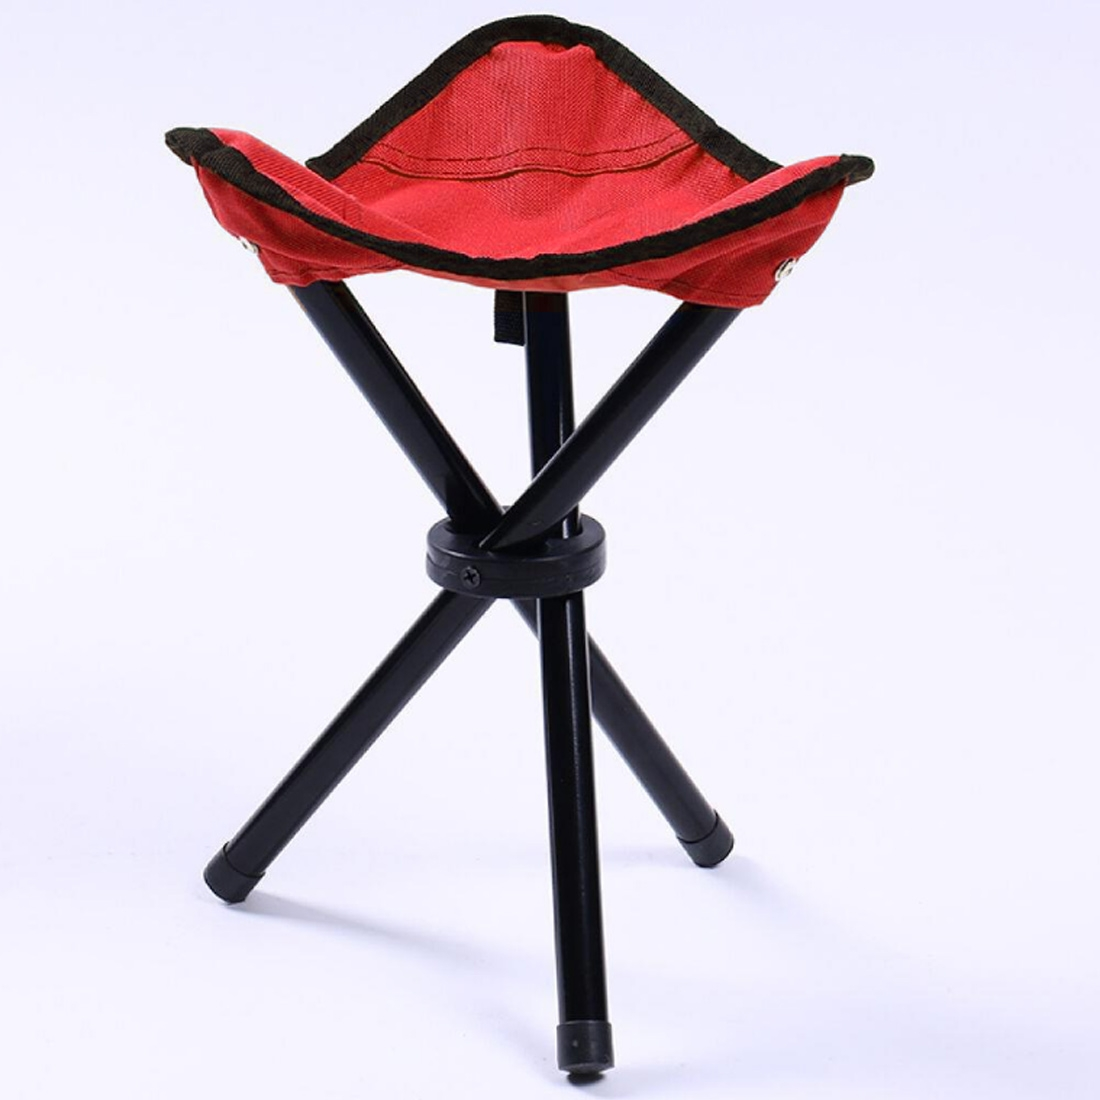 Cool Hiking Outdoor Camping Fishing Folding Stool Portable Triangle Chair Maximum Load 100Kg Folding Chair Size 22X22X31Cm Red Unemploymentrelief Wooden Chair Designs For Living Room Unemploymentrelieforg